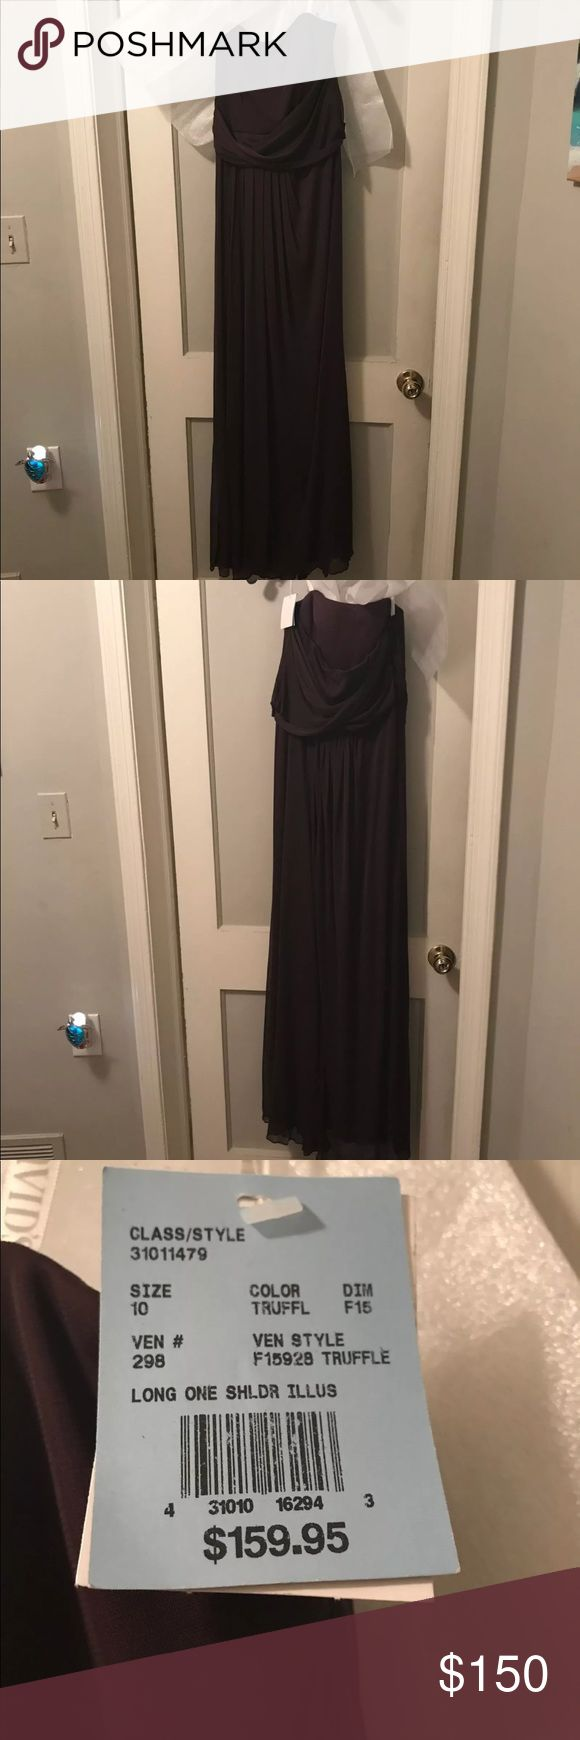 SALE !!!! LAST PRICE DROP .....Bridesmaid dress Bridesmaid dress from David's bridal never worn or altered it still has the tags . Size 10 . The first picture is the front of the dress and the second is the back of the dress. The last picture is a manufacturer picture of the dress. The color is truffle. From a dog friendly home . Please ask if you have anymore questions davids bridal Dresses